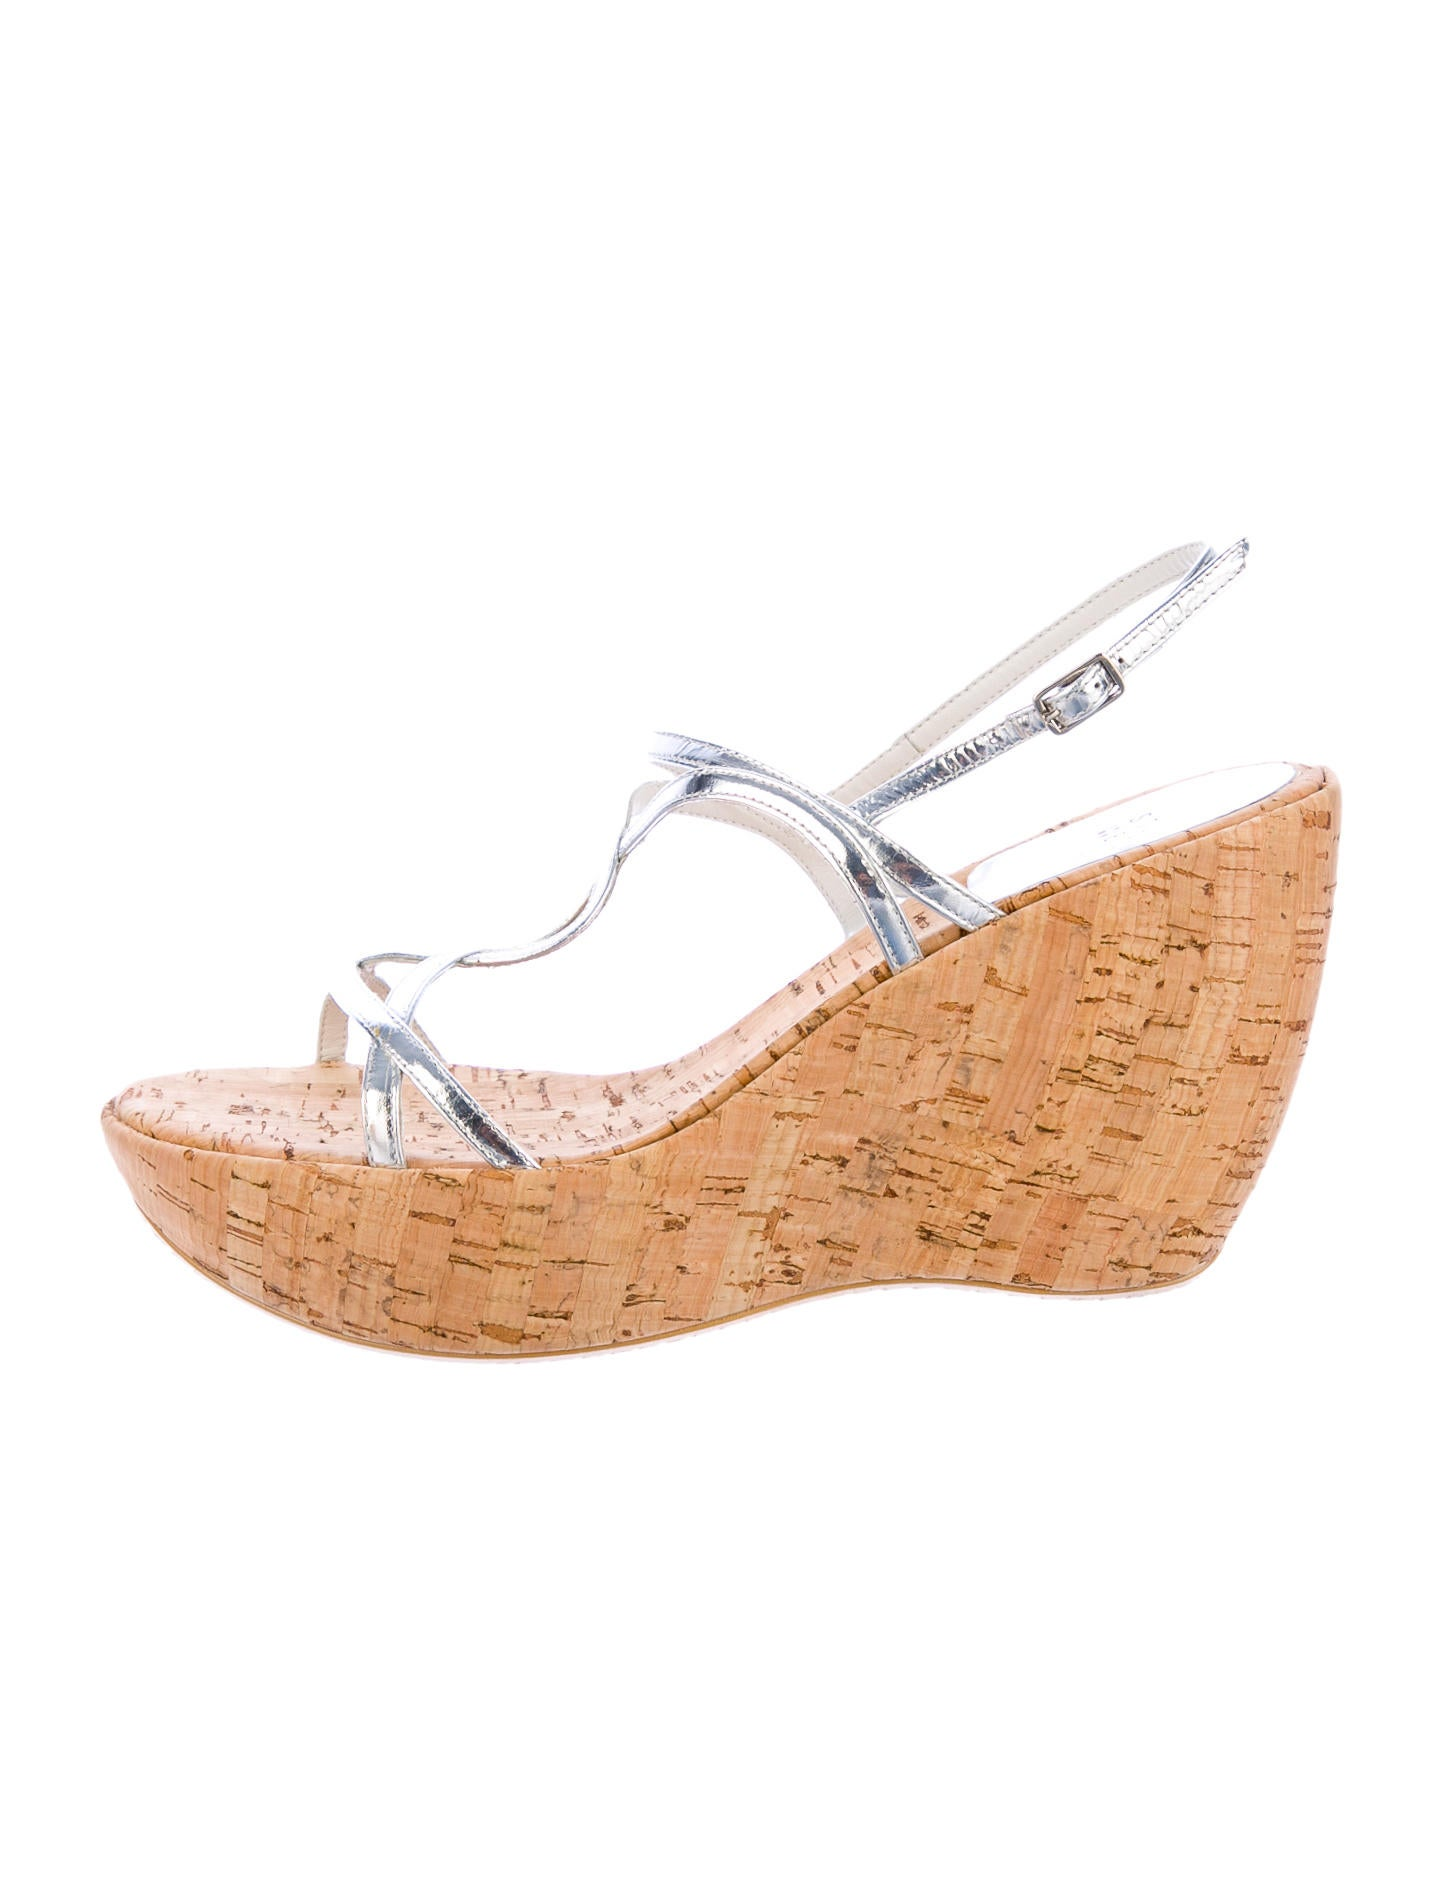 Stuart Weitzman Wedges w/ Tags - Shoes - WSU20559 | The RealReal